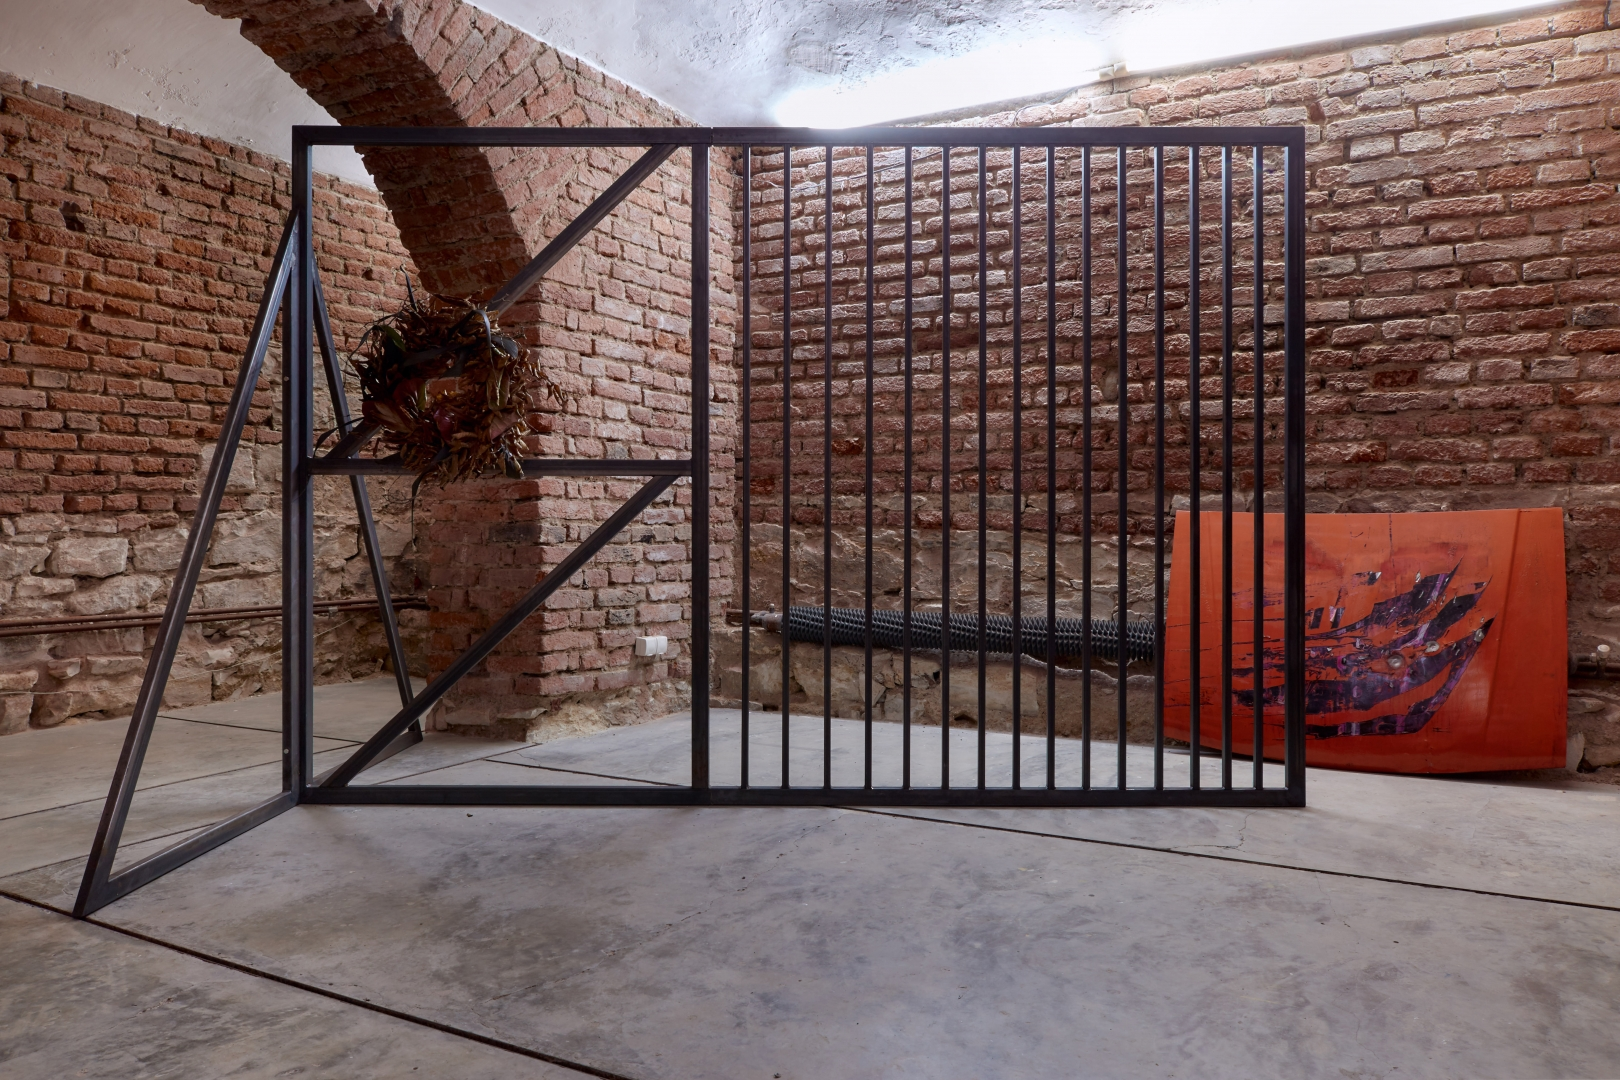 Adrian Kiss: Through the Gate of Absence